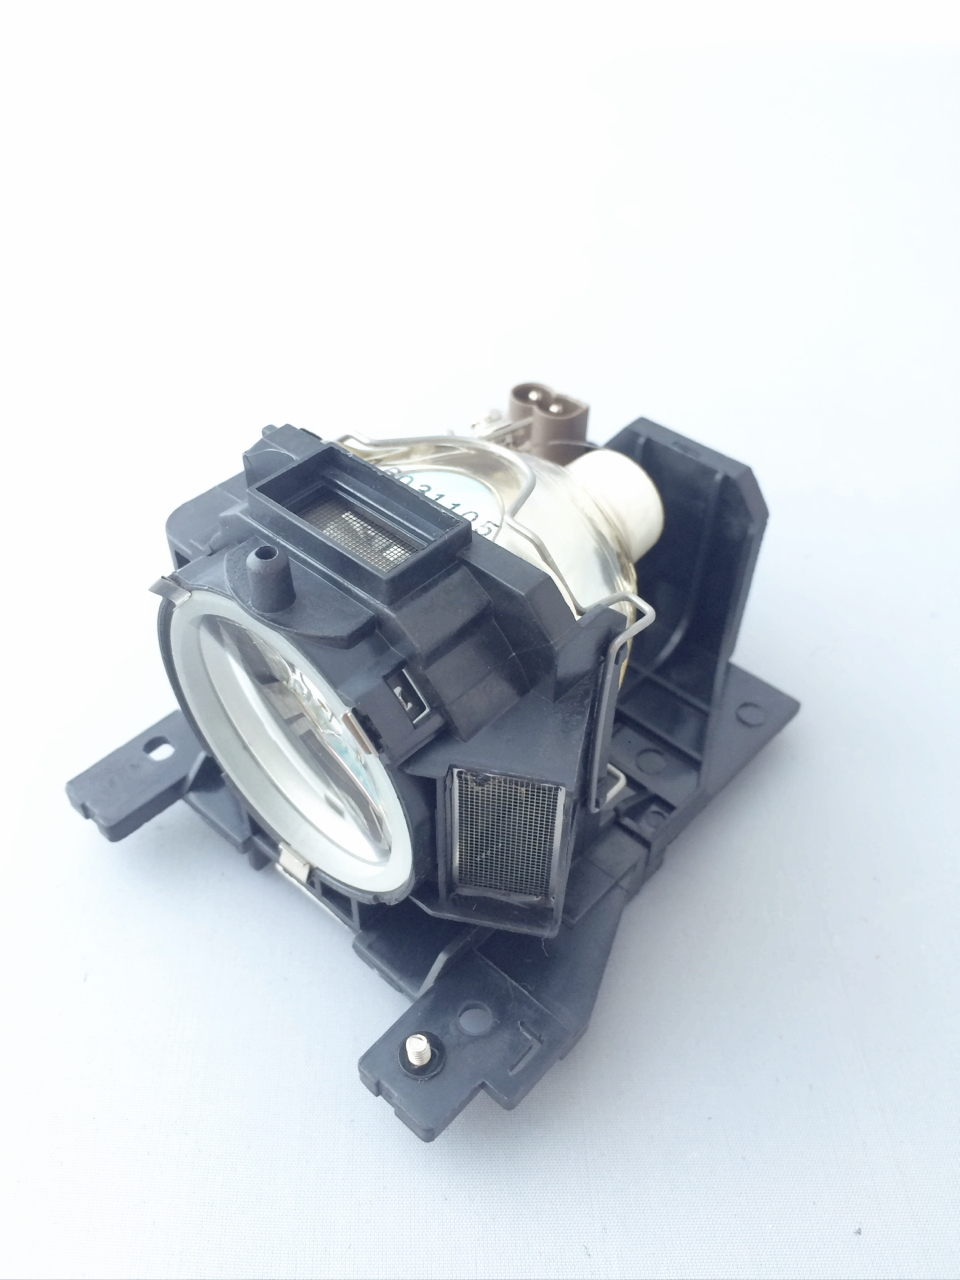 SHENG Replacement Projector Lamp DT00891 for HITACHI CP-A100 / ED-A100 / CP-A110 / HCP-A8 / CP-A100J / ED-A100J / ED-A110